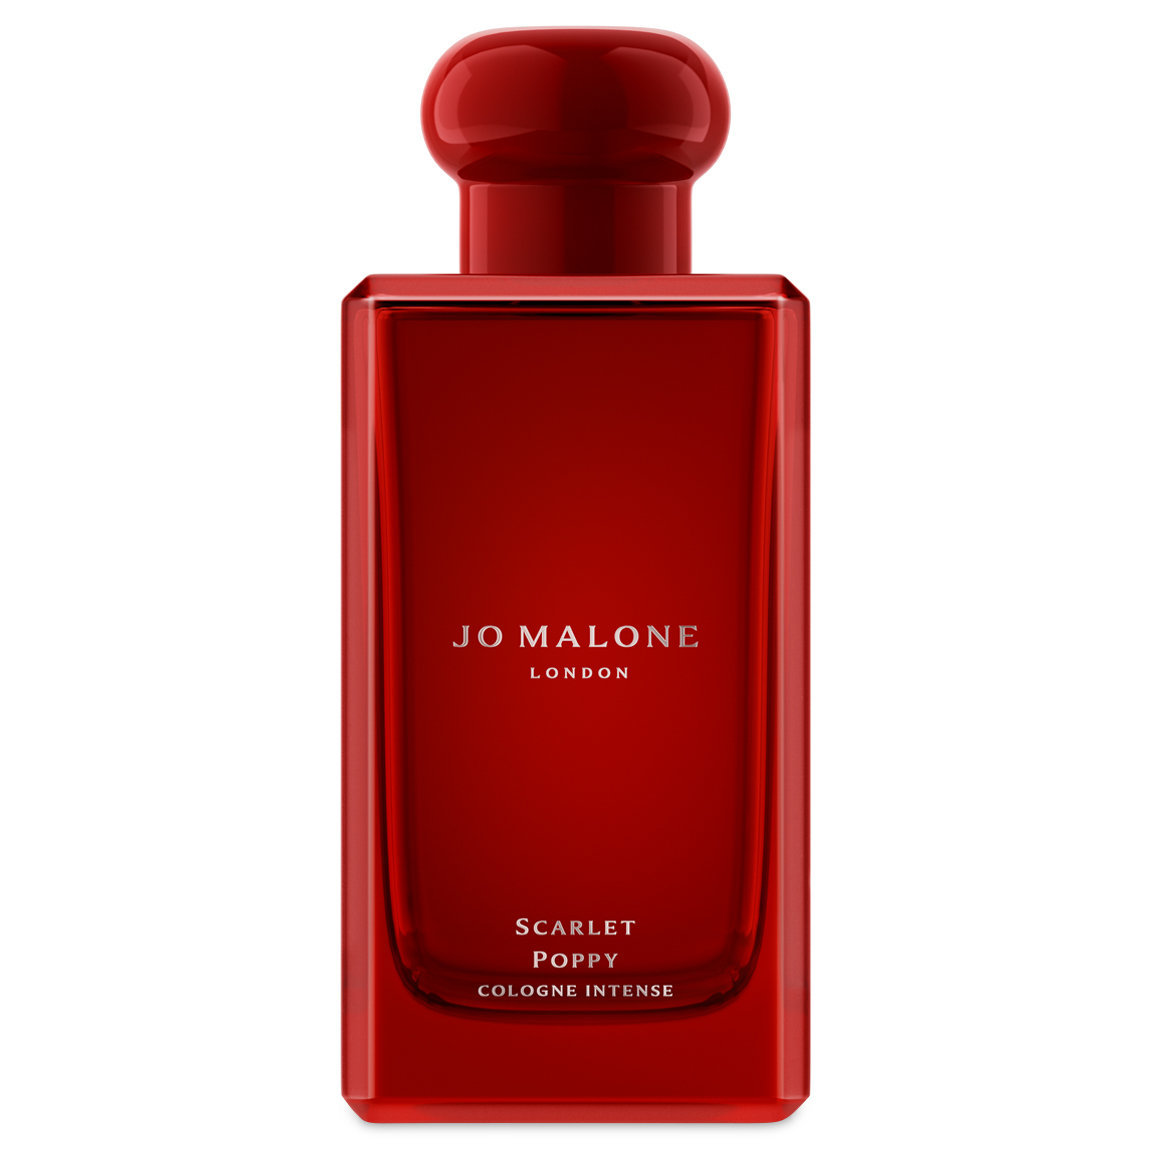 Jo Malone London Scarlet Poppy Cologne Intense 100 ml alternative view 1 - product swatch.